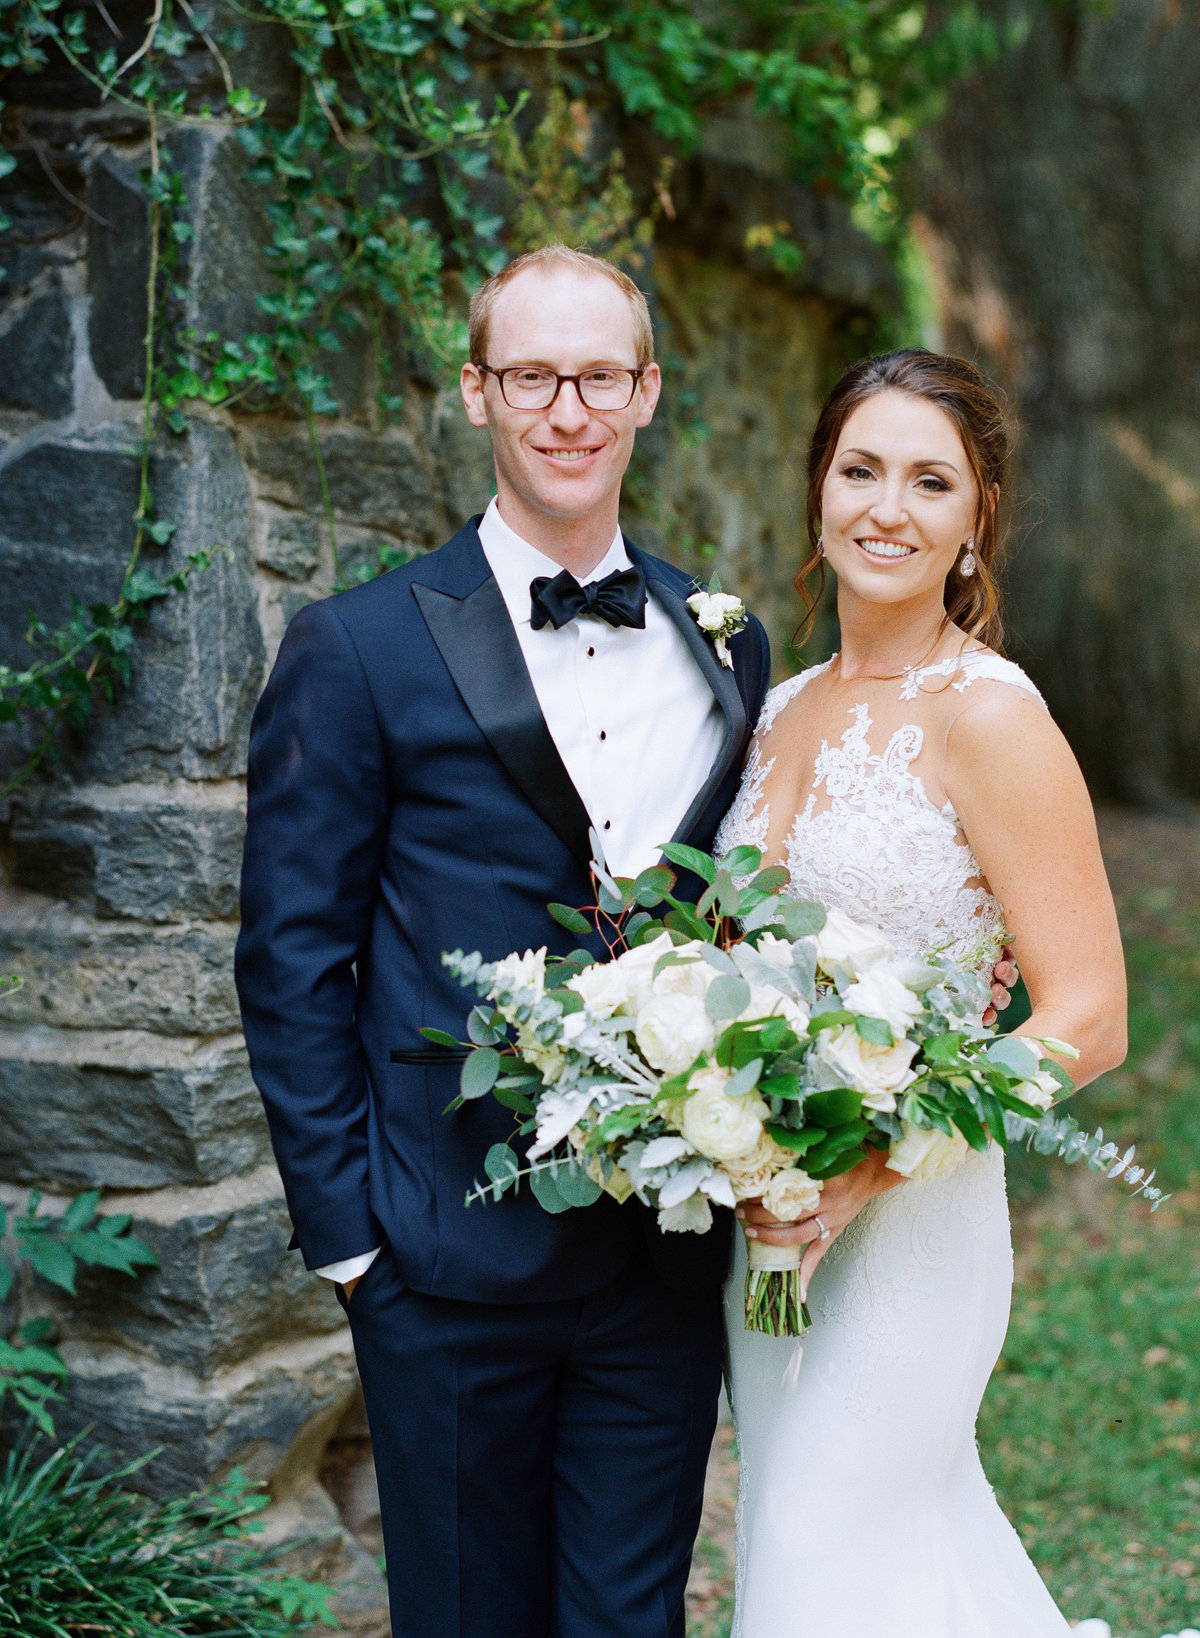 Classic Bride and Groom at the Greystone at Piedmont Park